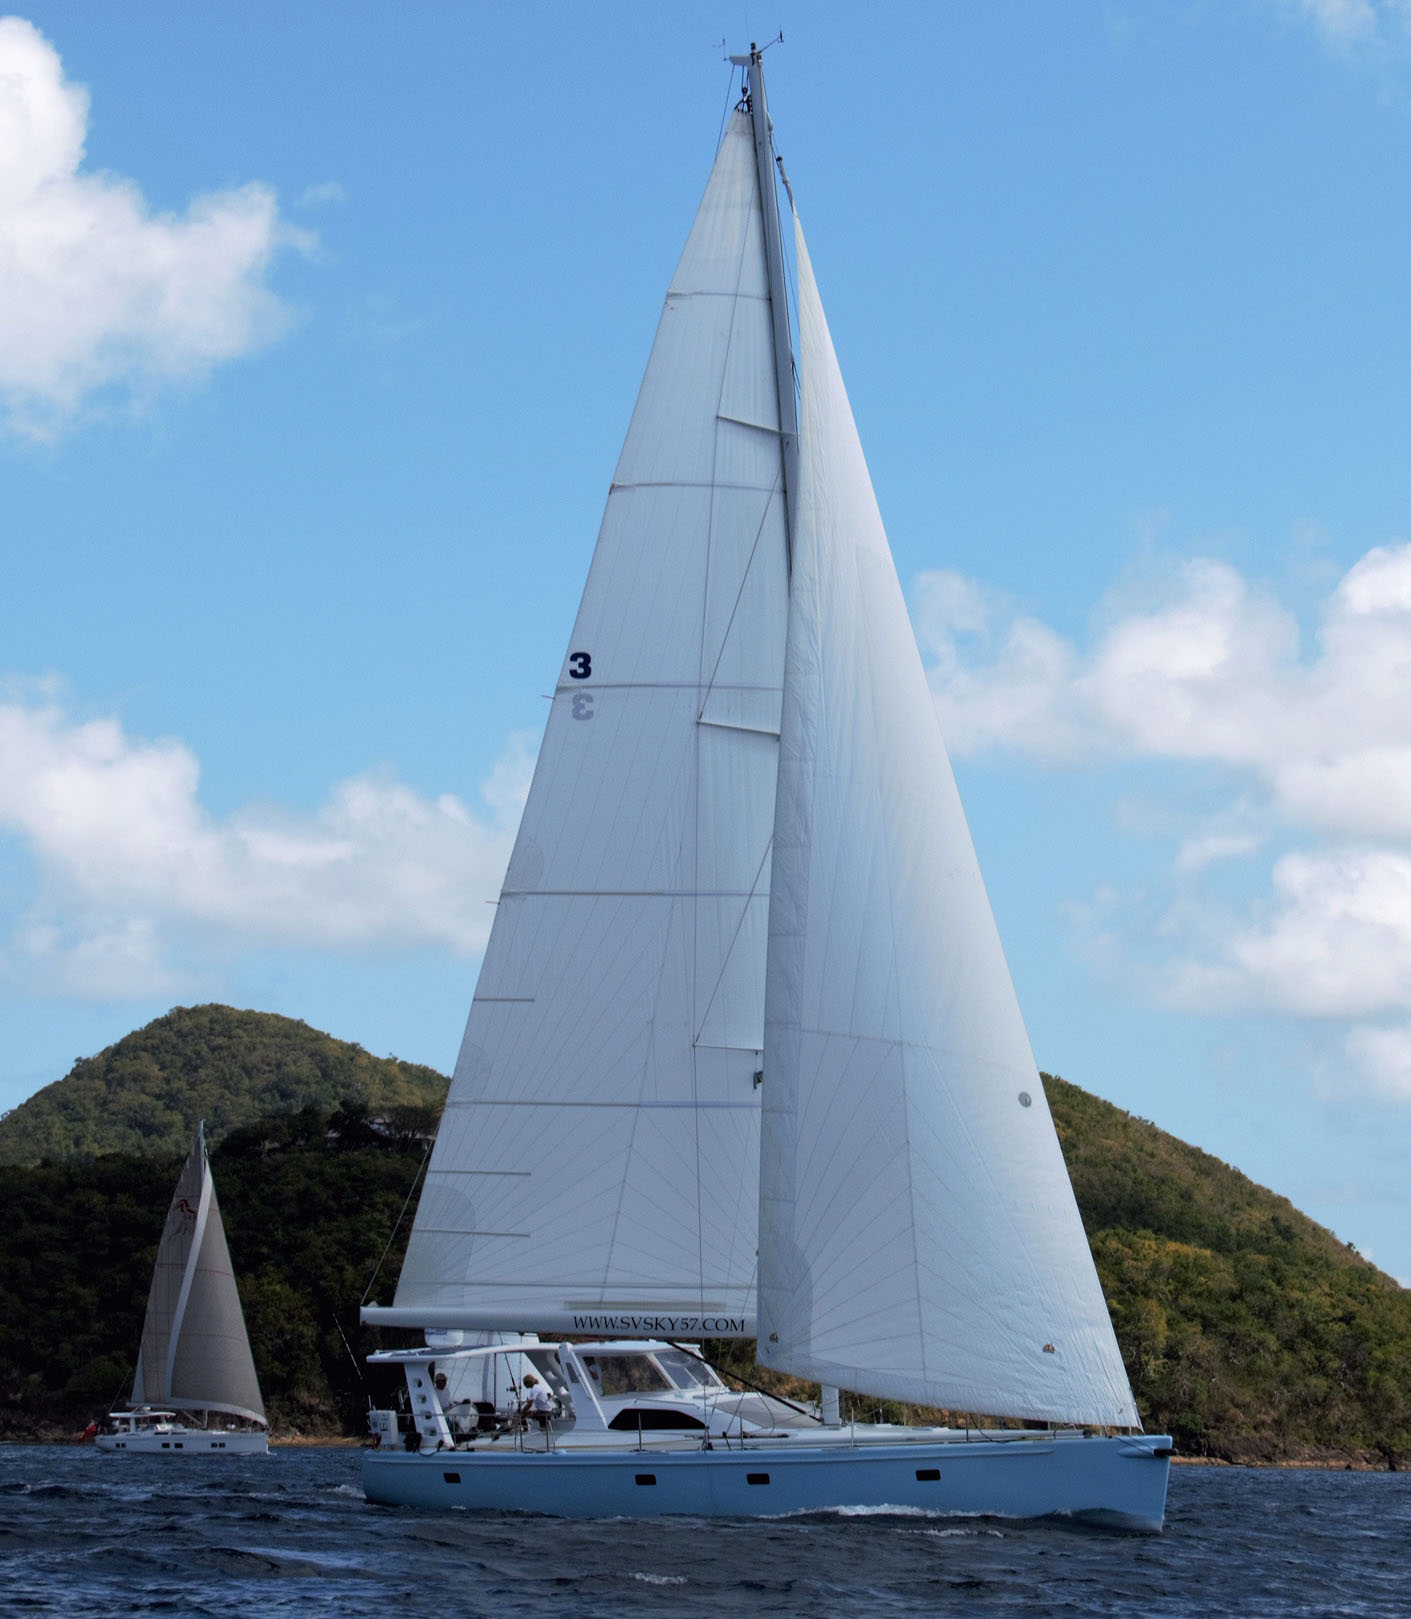 Sailing Staboard View